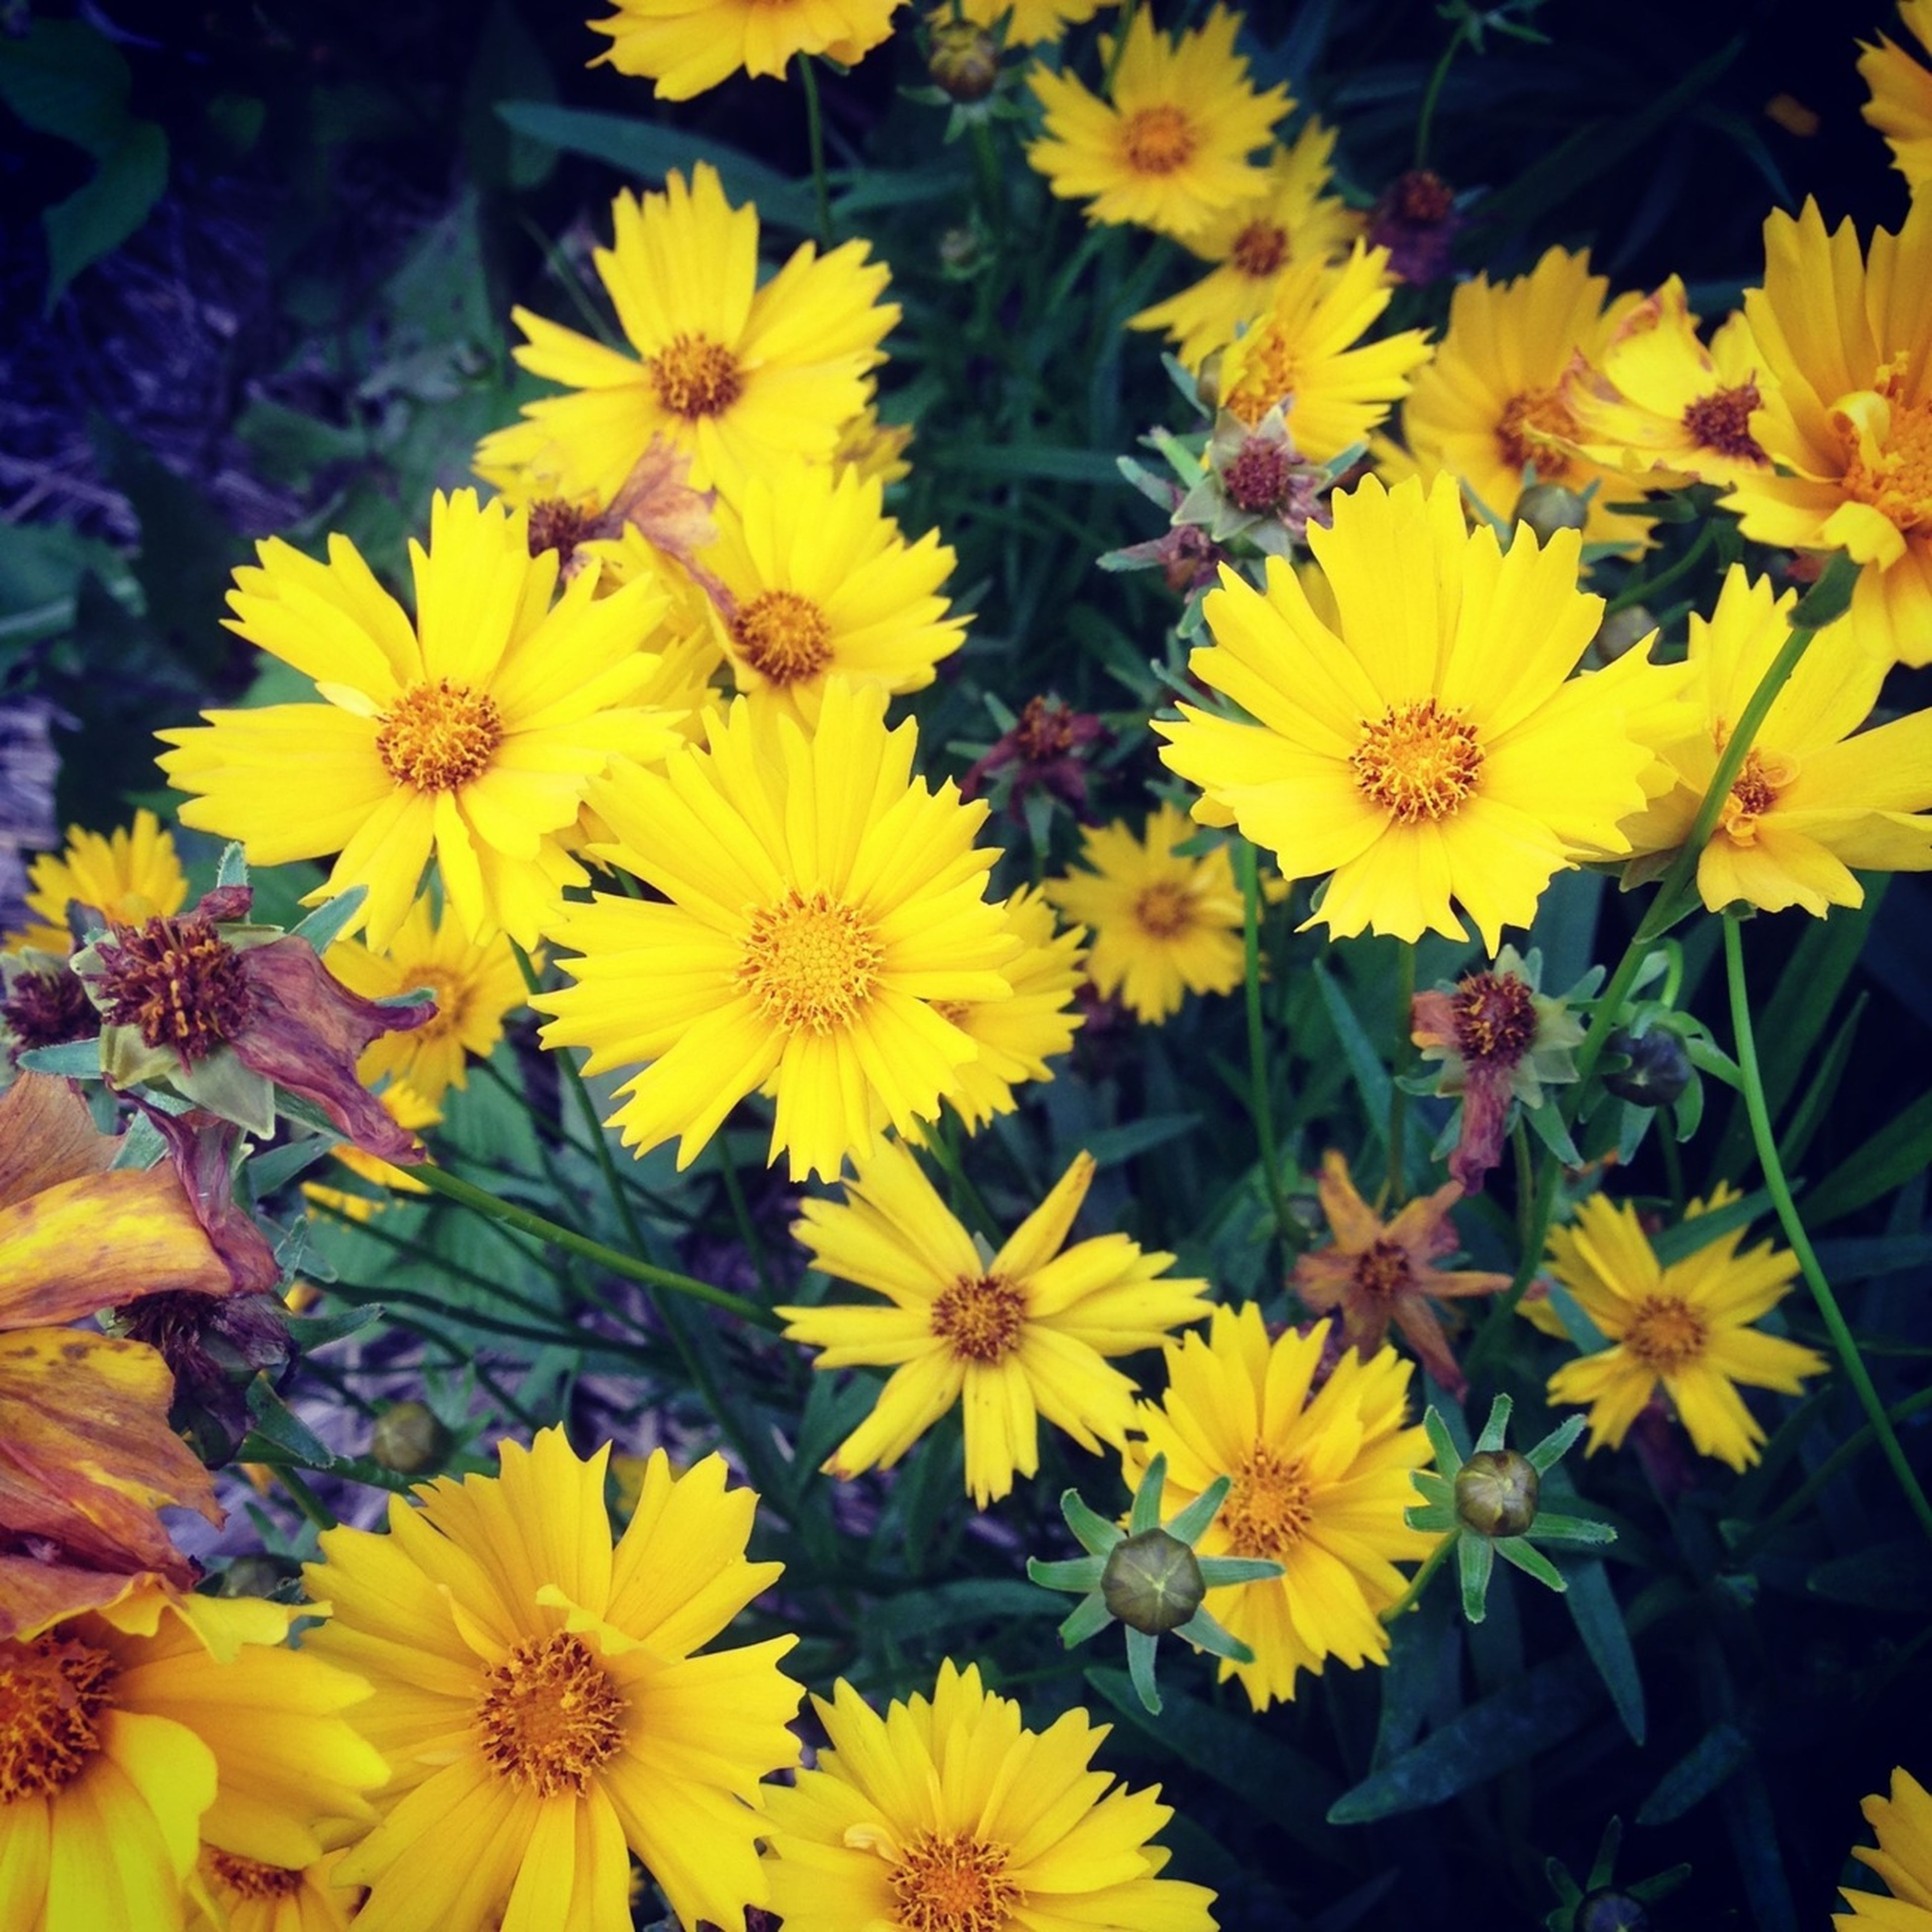 flower, yellow, freshness, petal, fragility, flower head, growth, beauty in nature, blooming, plant, nature, high angle view, pollen, close-up, in bloom, outdoors, day, abundance, leaf, park - man made space